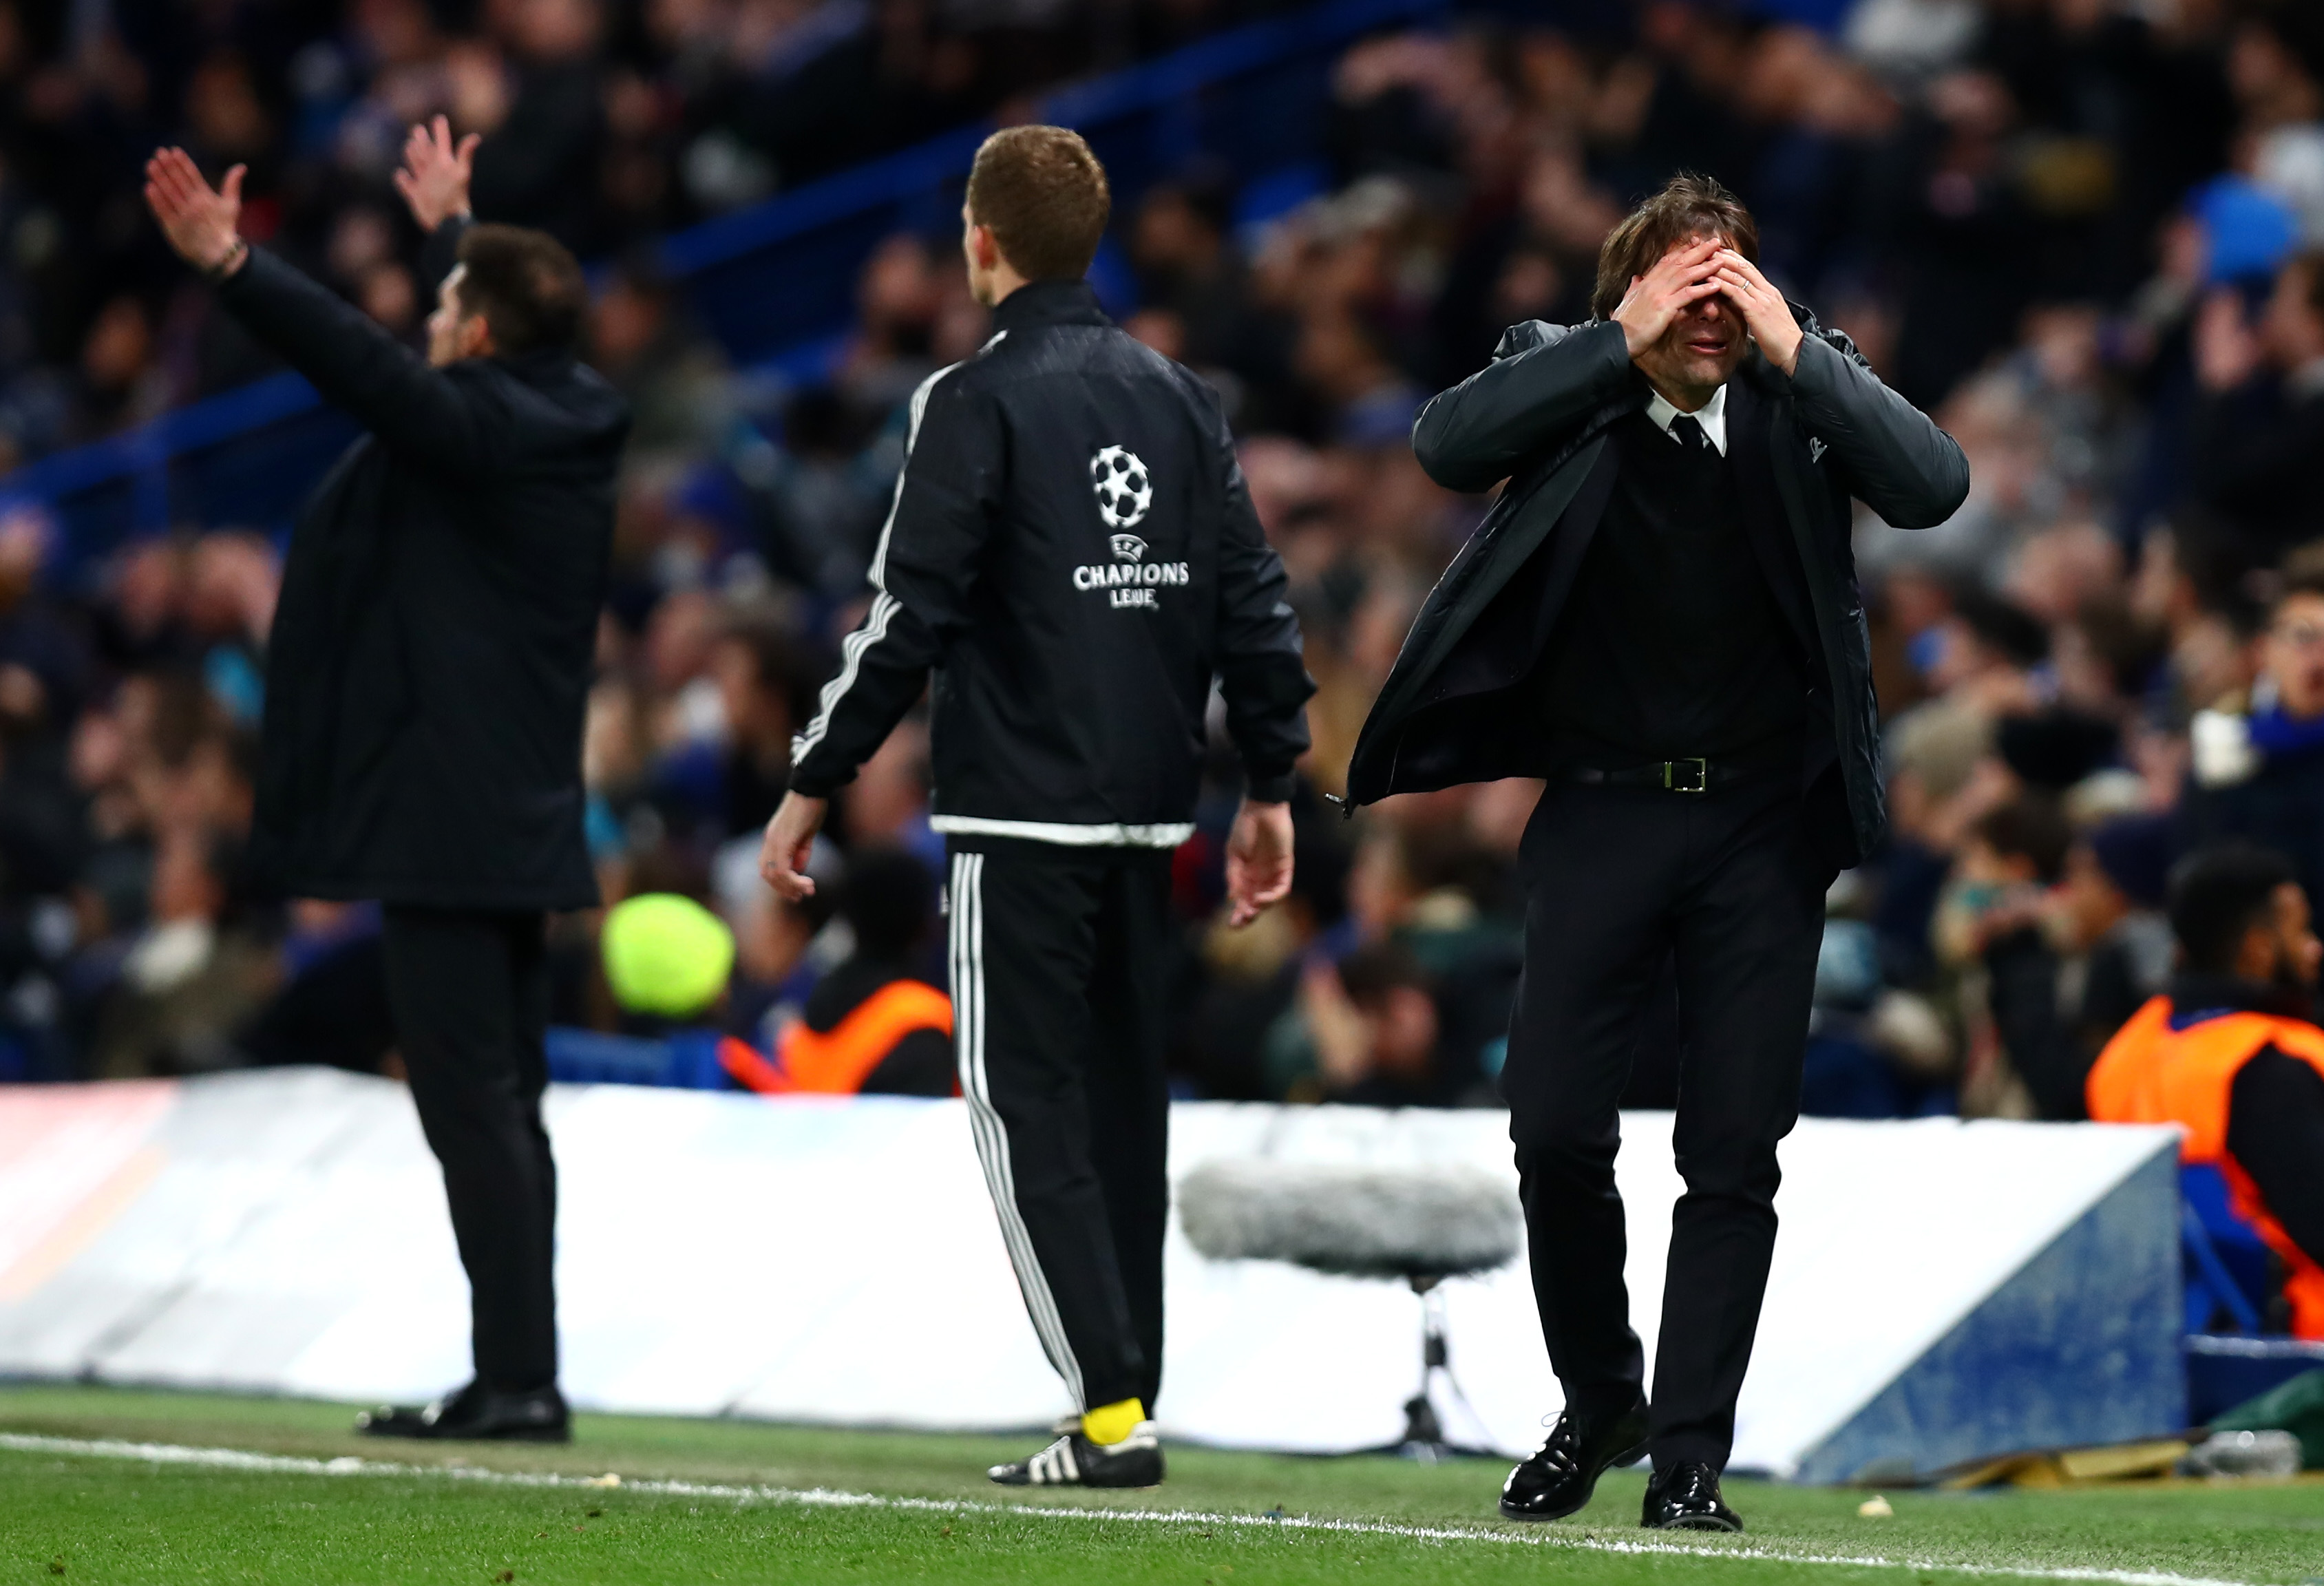 Chelsea boss Antonio Conte warns fans over Champions League expectations